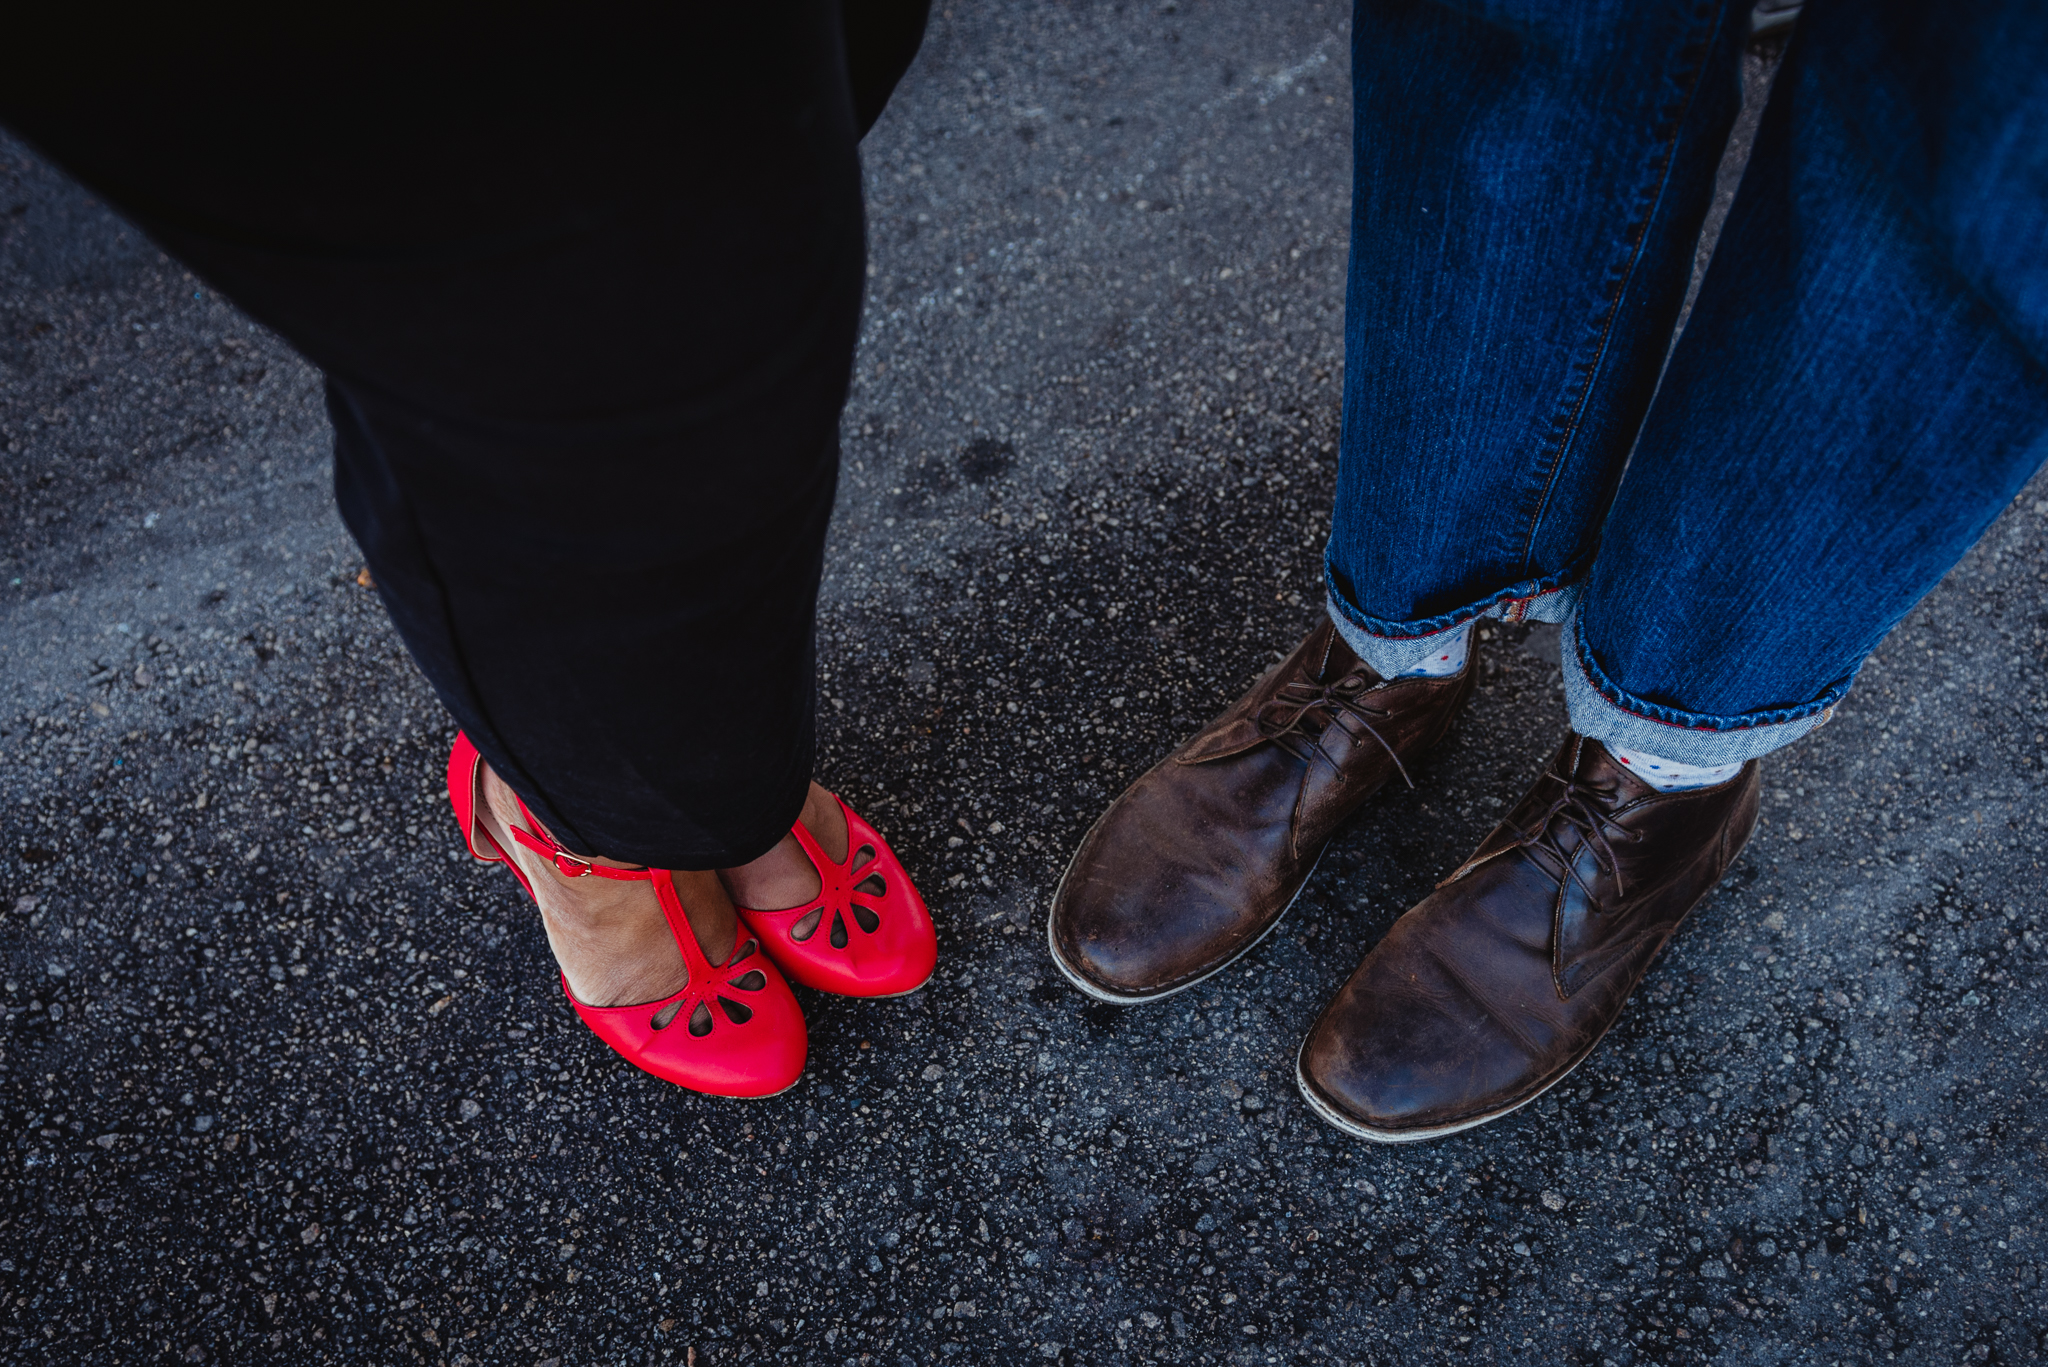 bright-red-shoes-while-walking-at-the-NC-State-fair.jpg